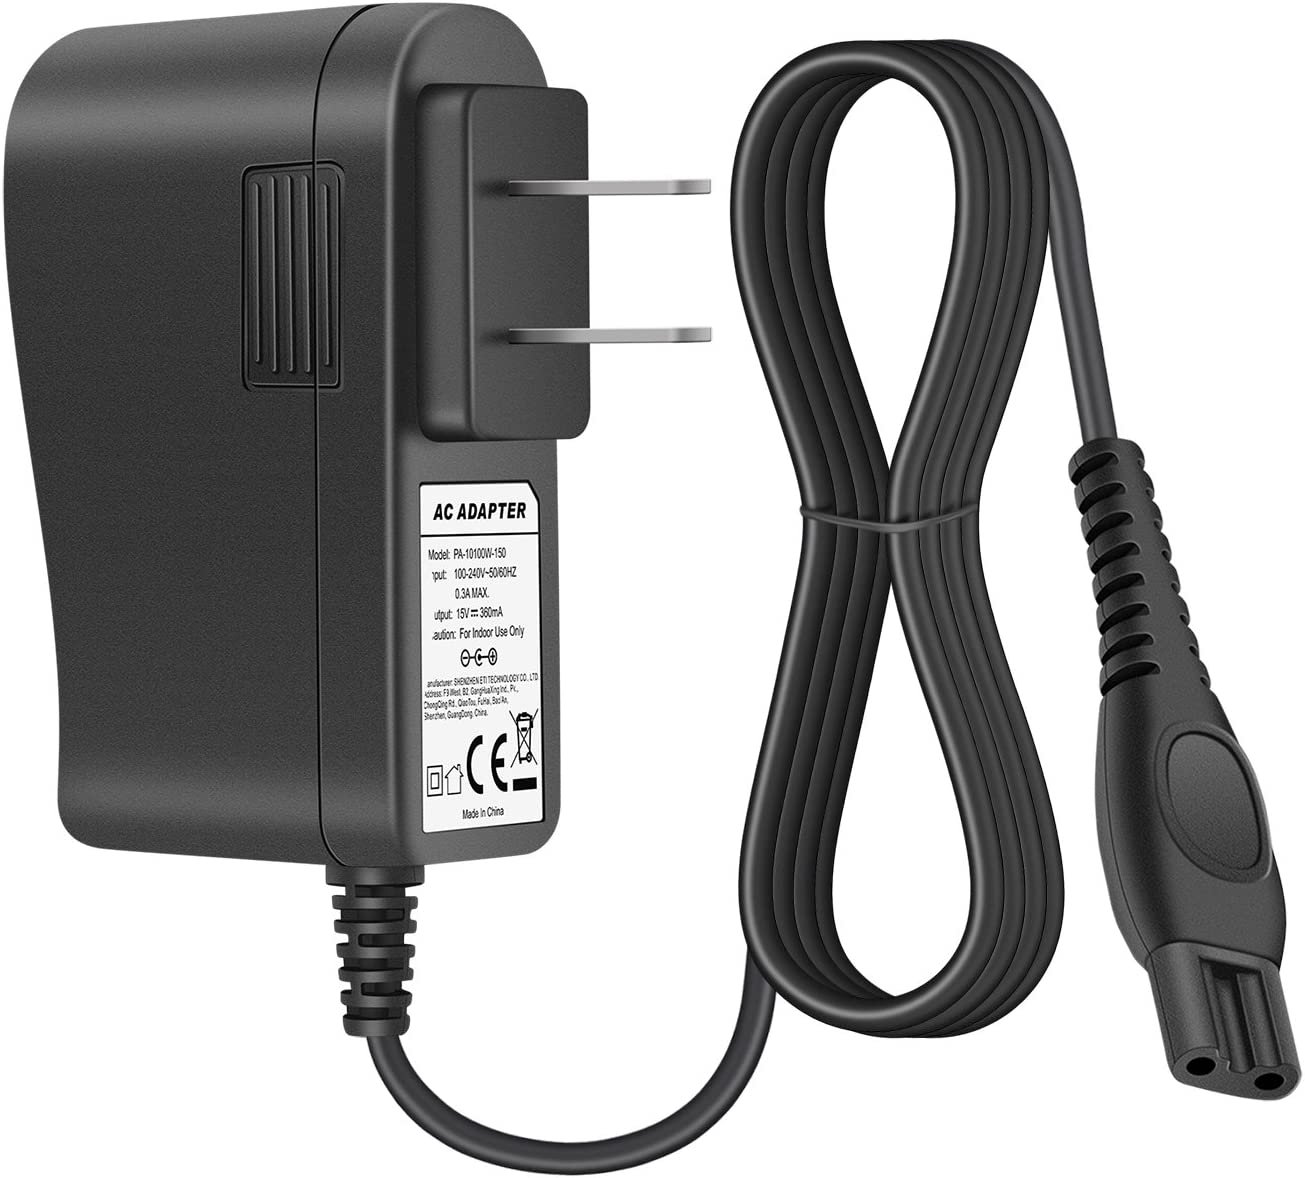 Sale item POWSEED 15V AC NEW Power Adapter Norelco Shaver Charger Philips for